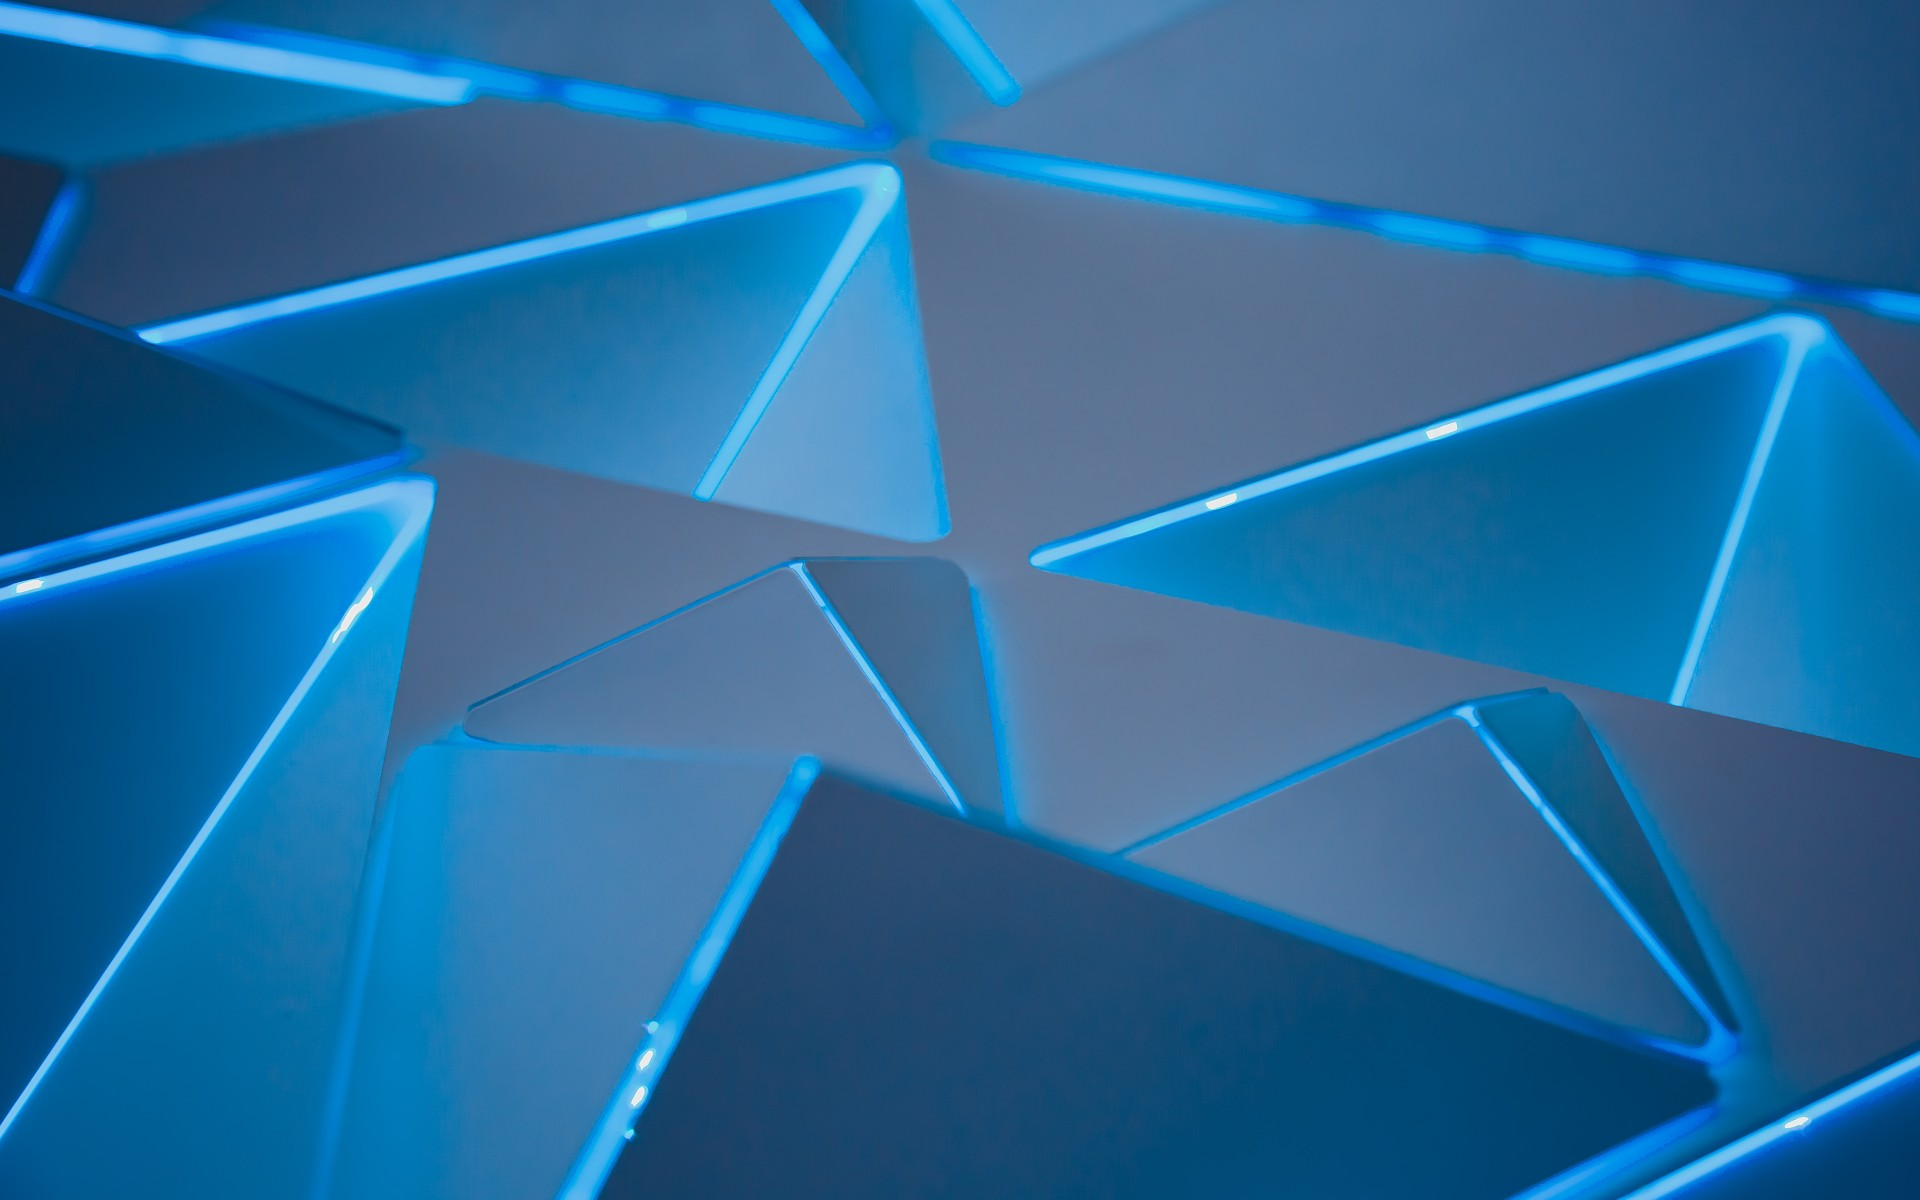 3d Moving Wallpaper Iphone 6 3d Blue Triangles Wallpapers Hd Wallpapers Id 24665